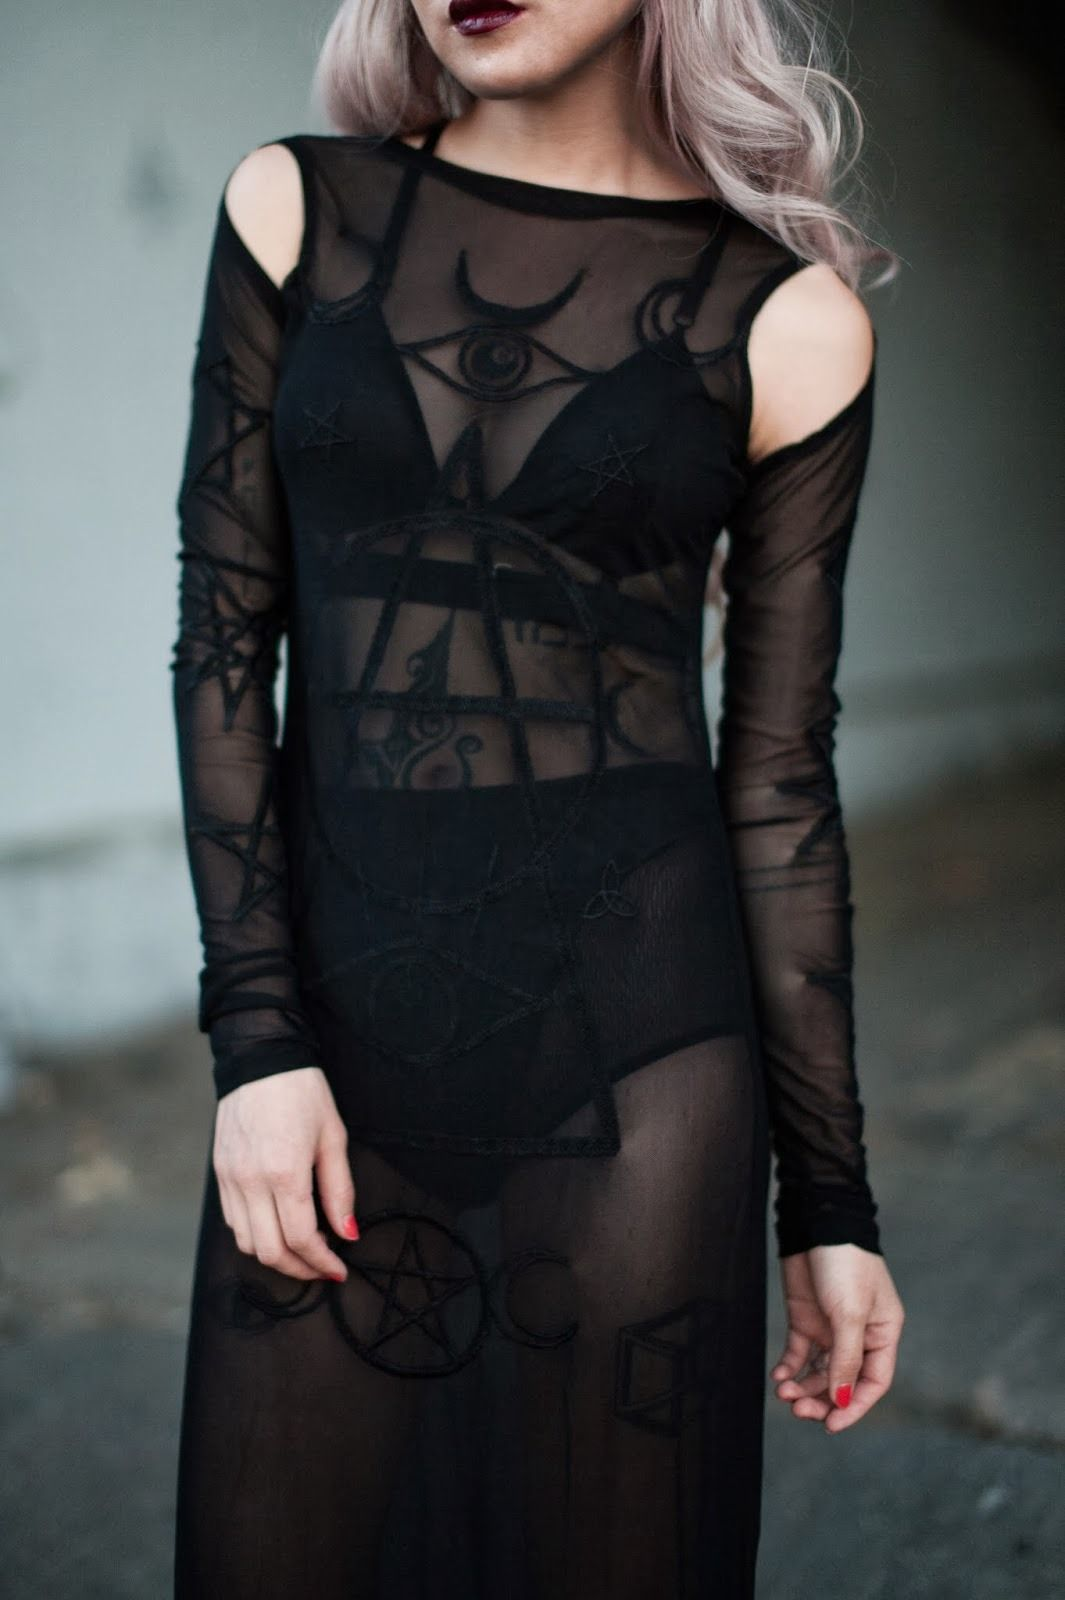 Pin by allie who on goth girls pinterest gothic clothes and witches